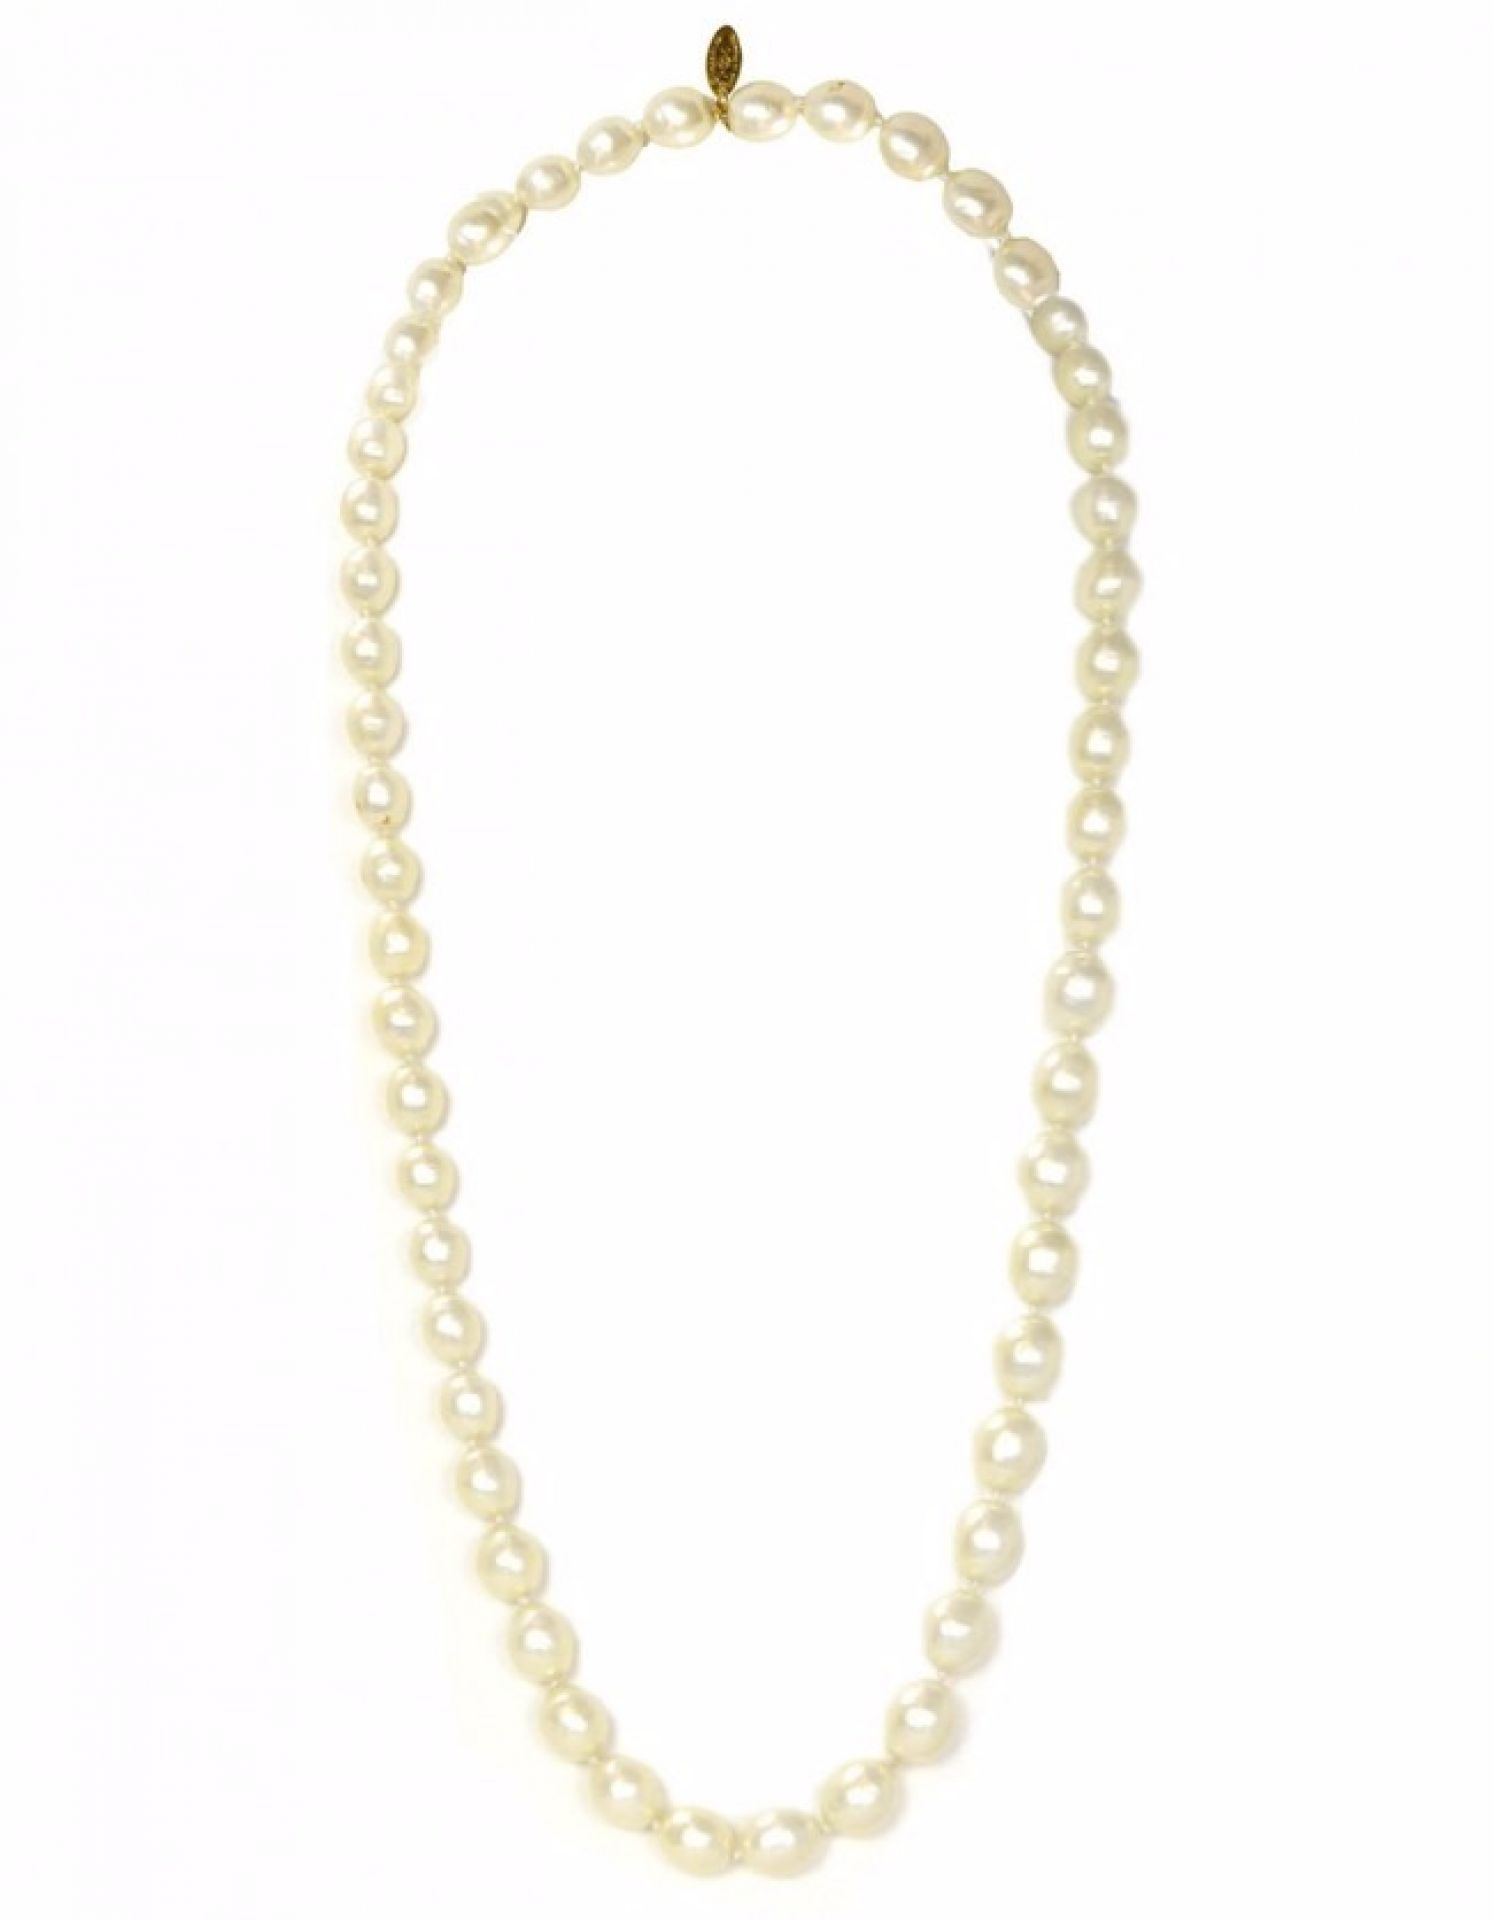 CHANEL Vintage '87 Graduated Pearls Single Strand Necklace